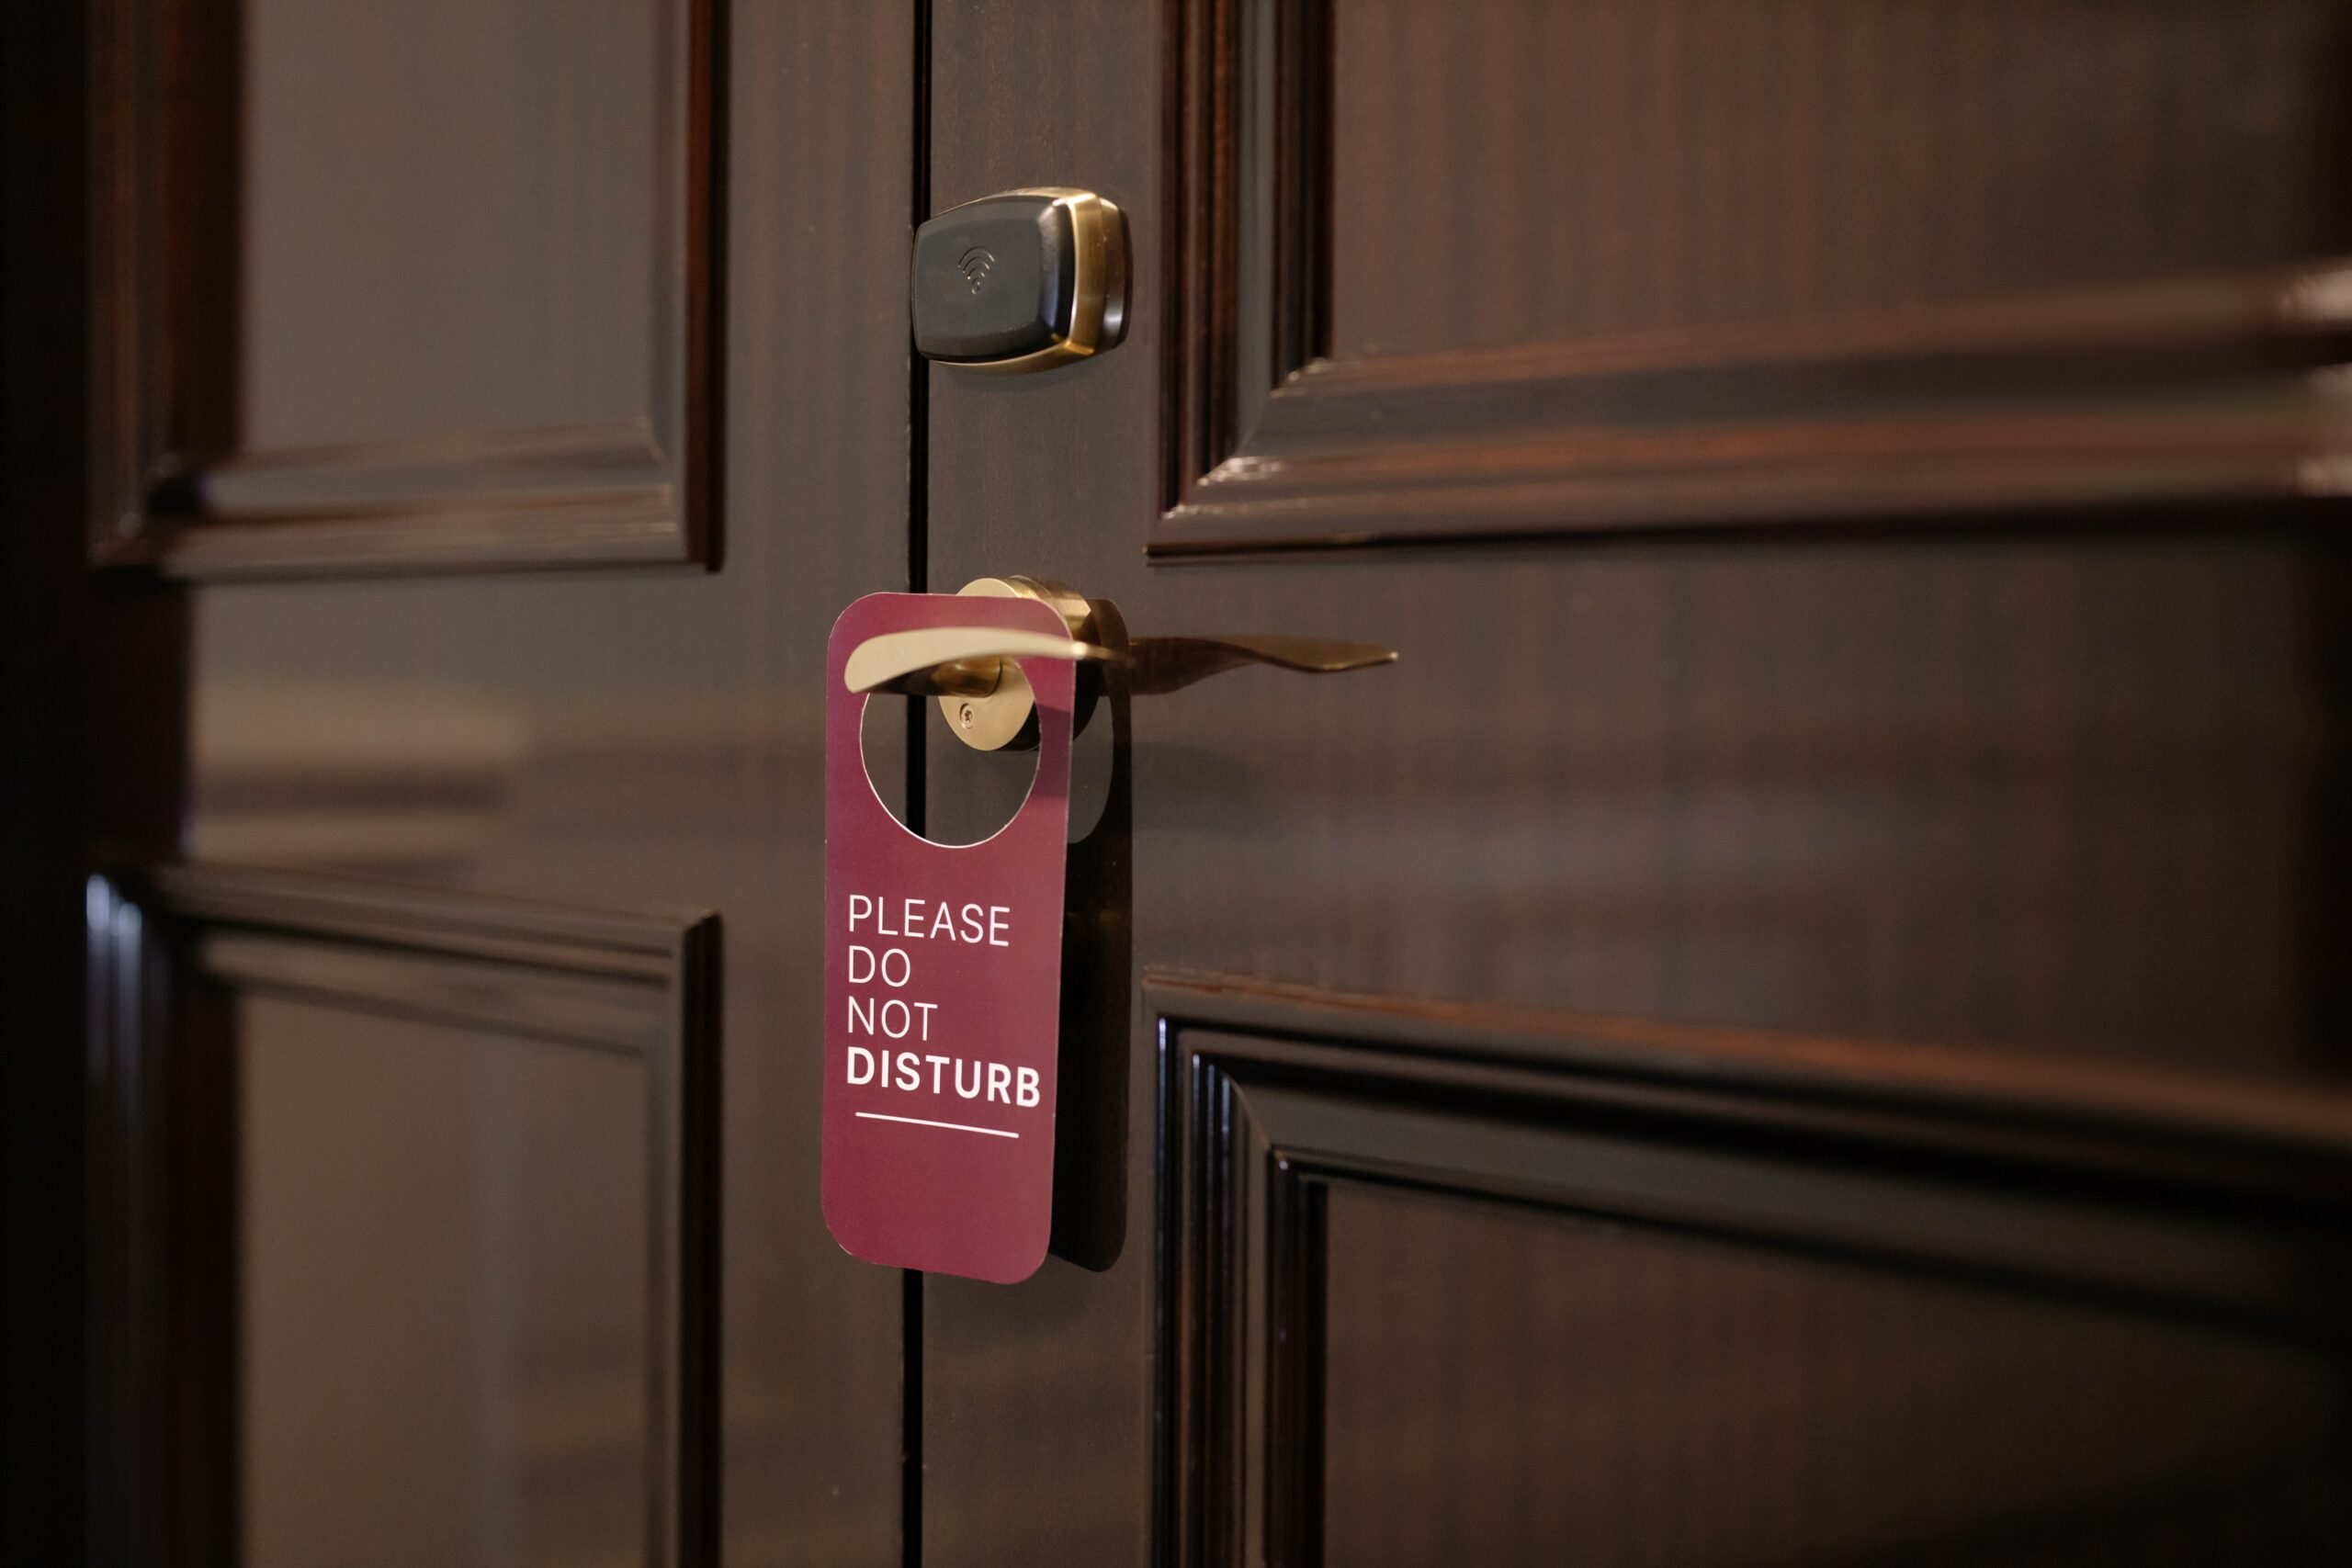 A door with a Do Not Disturb sign on it